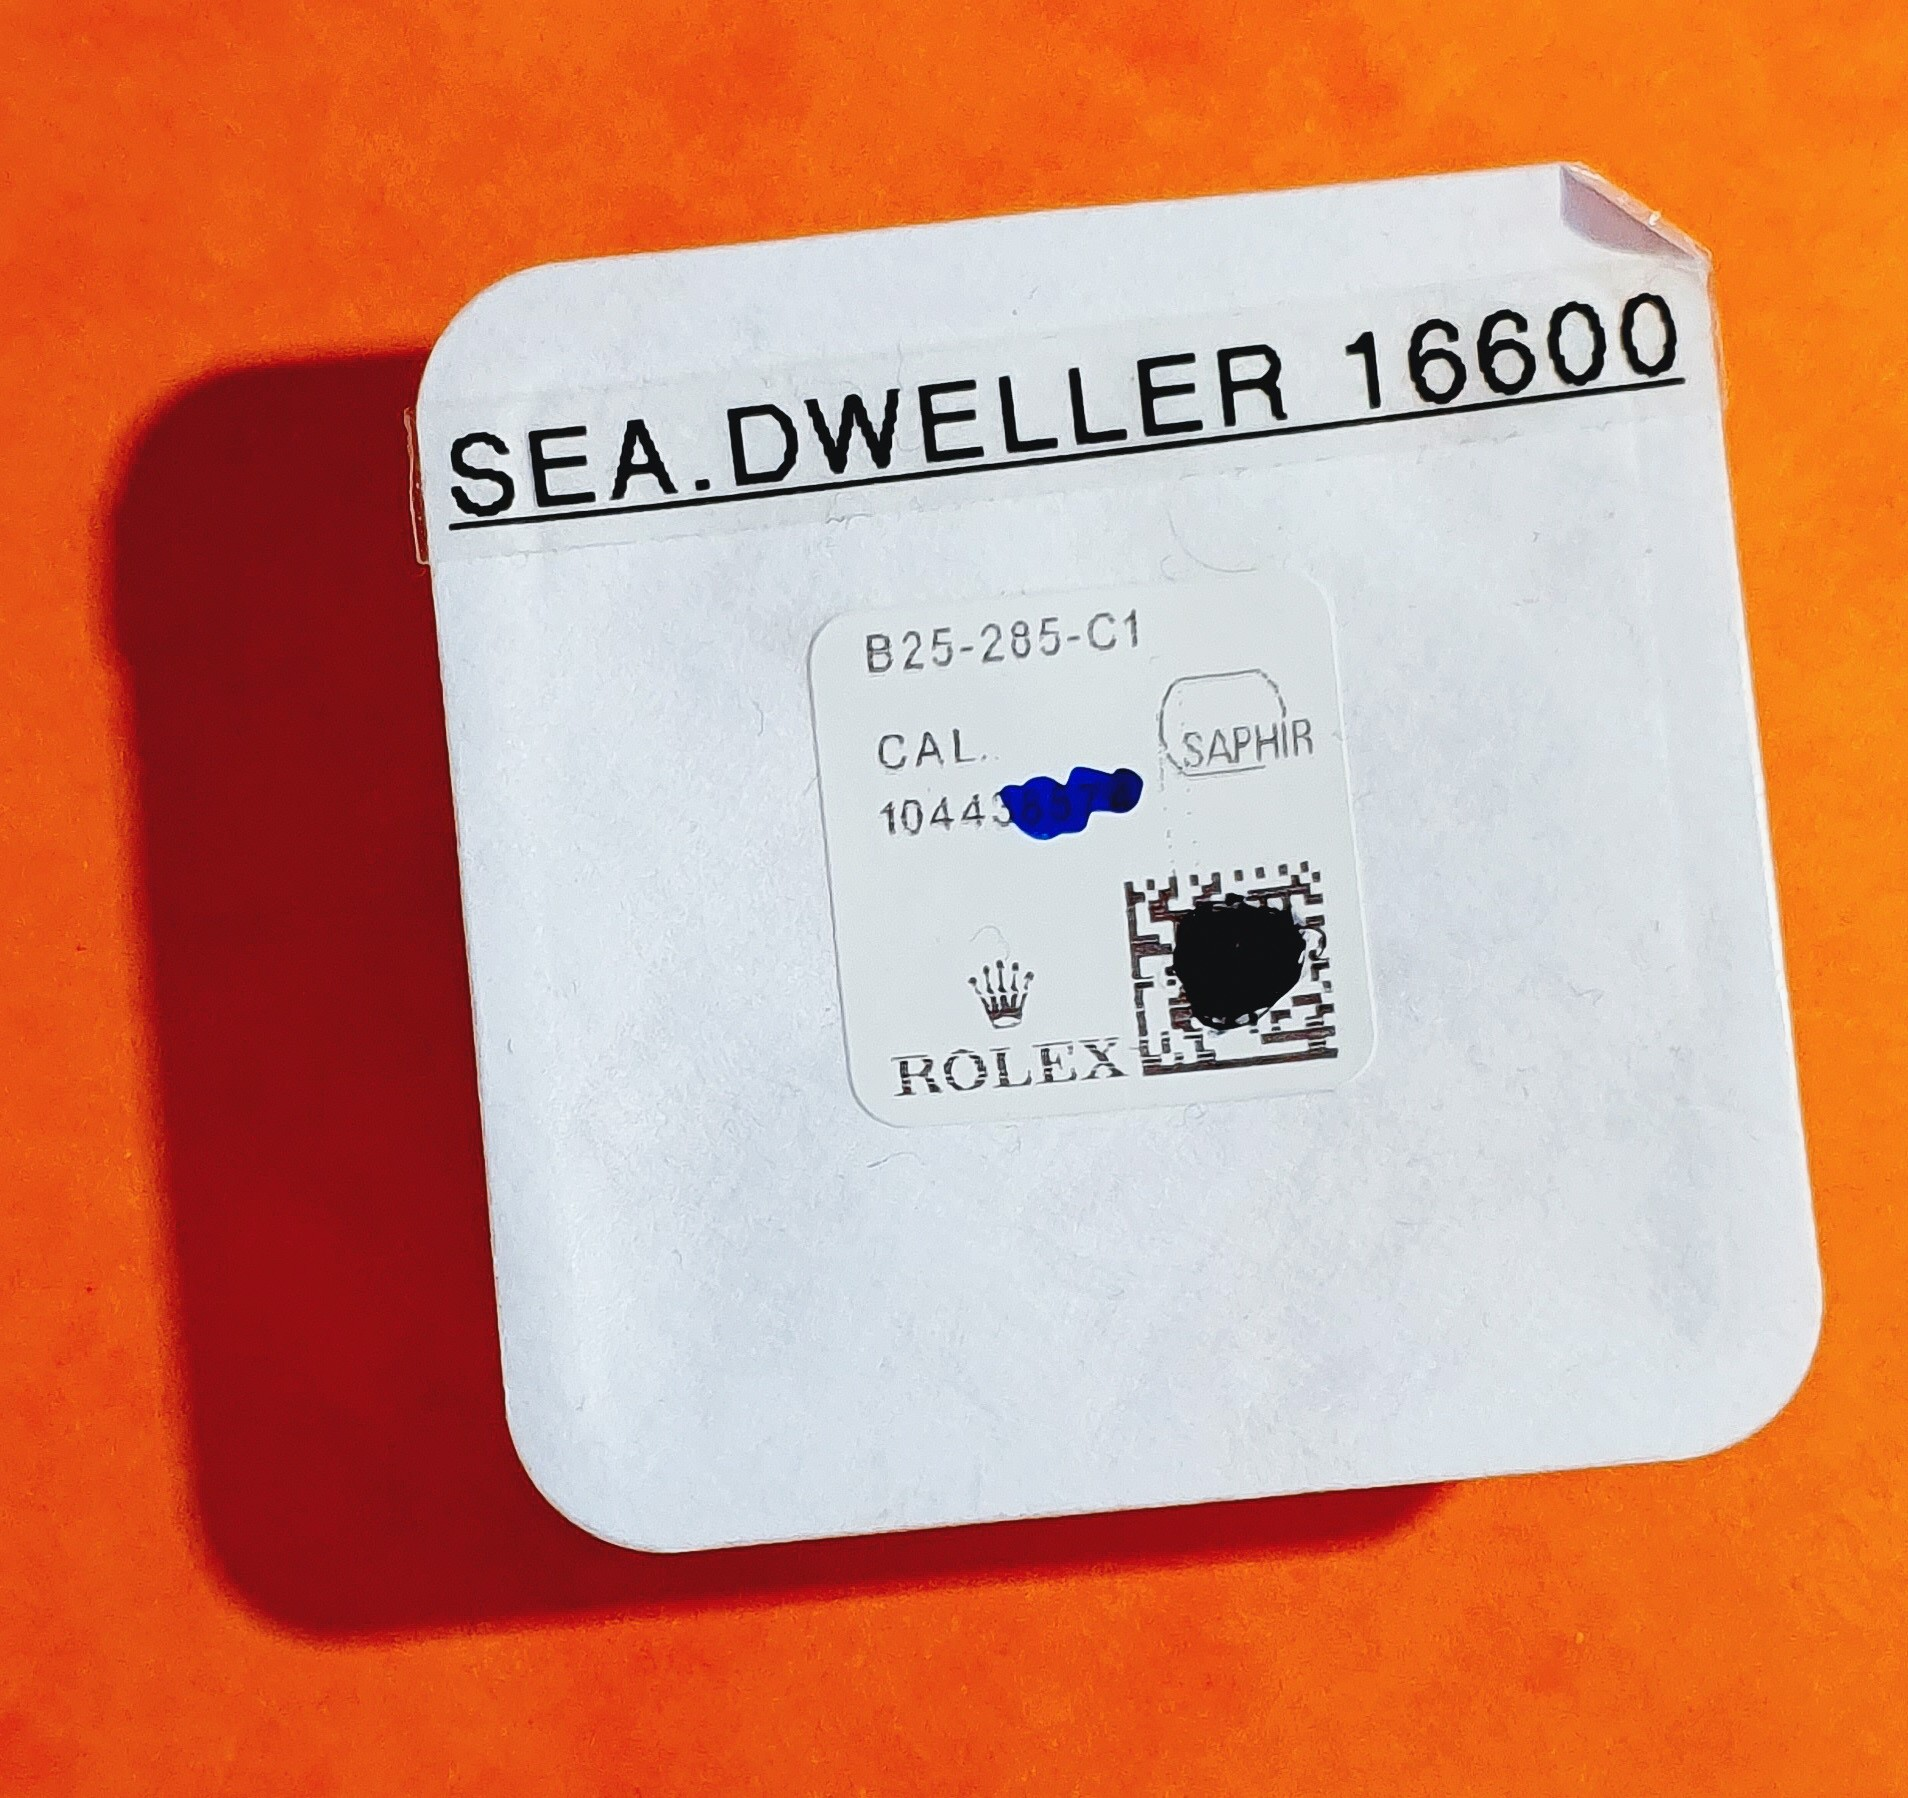 ROLEX Factory watches NEW Sapphire Crystal SEA-DWELLER 16660, 16600 Ref B25-285-C1